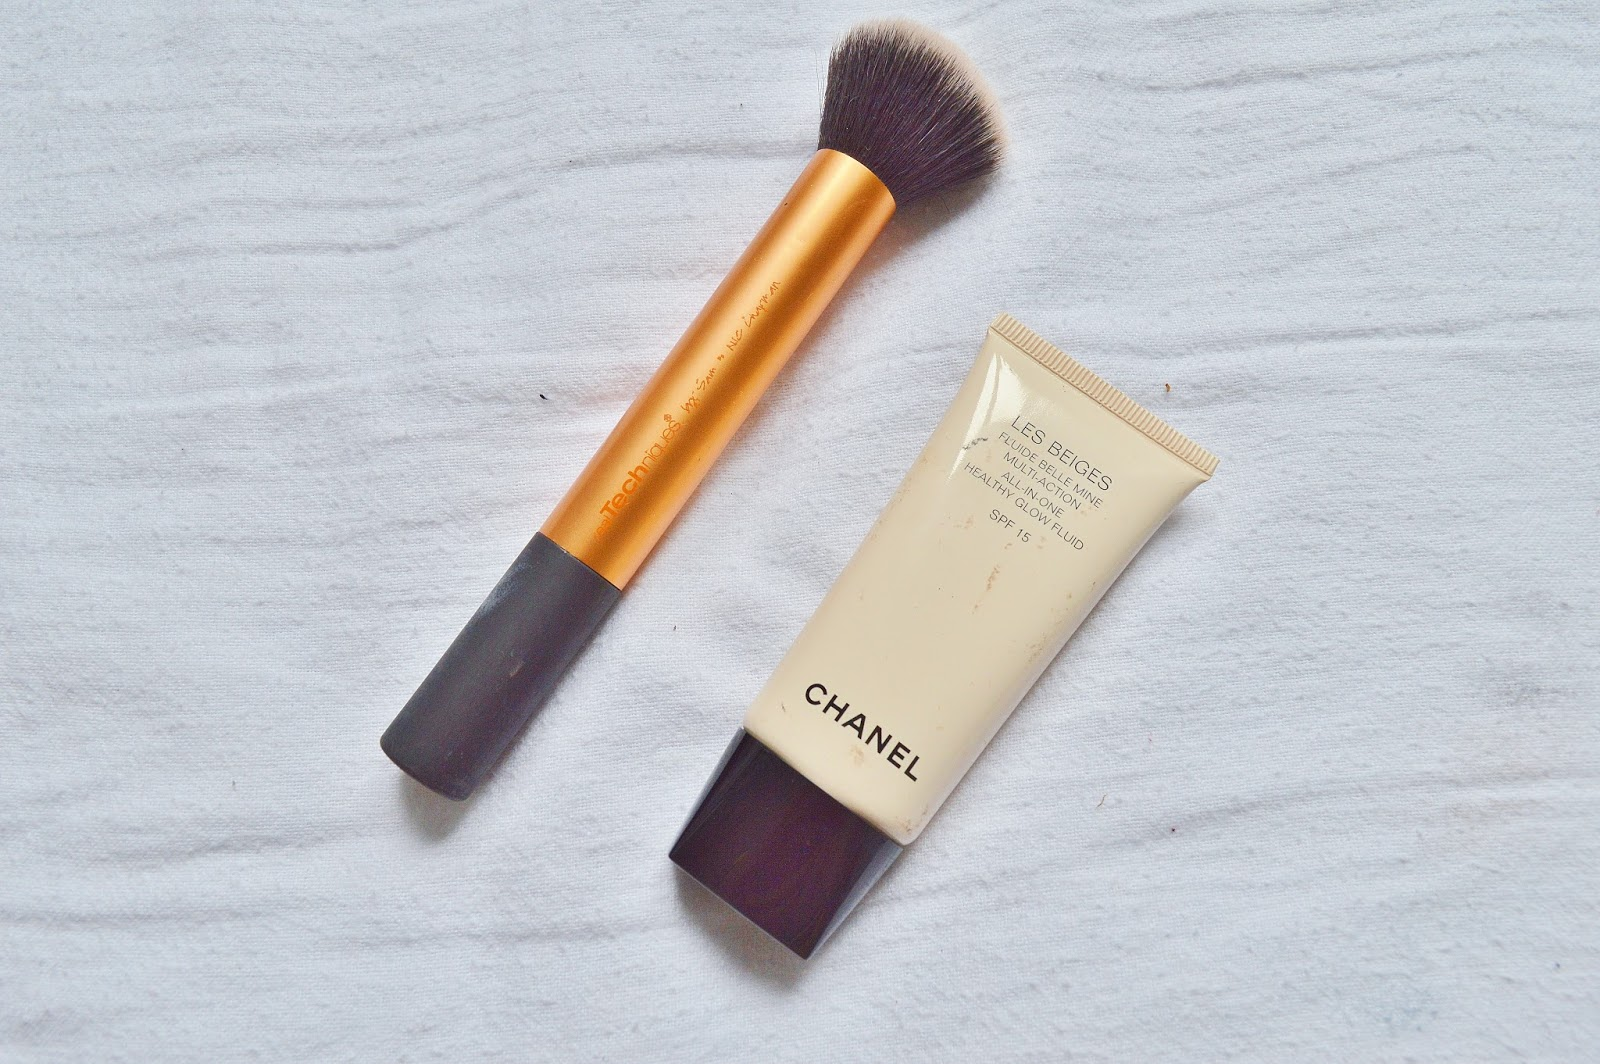 Chanel All-In-One Skin Perfector